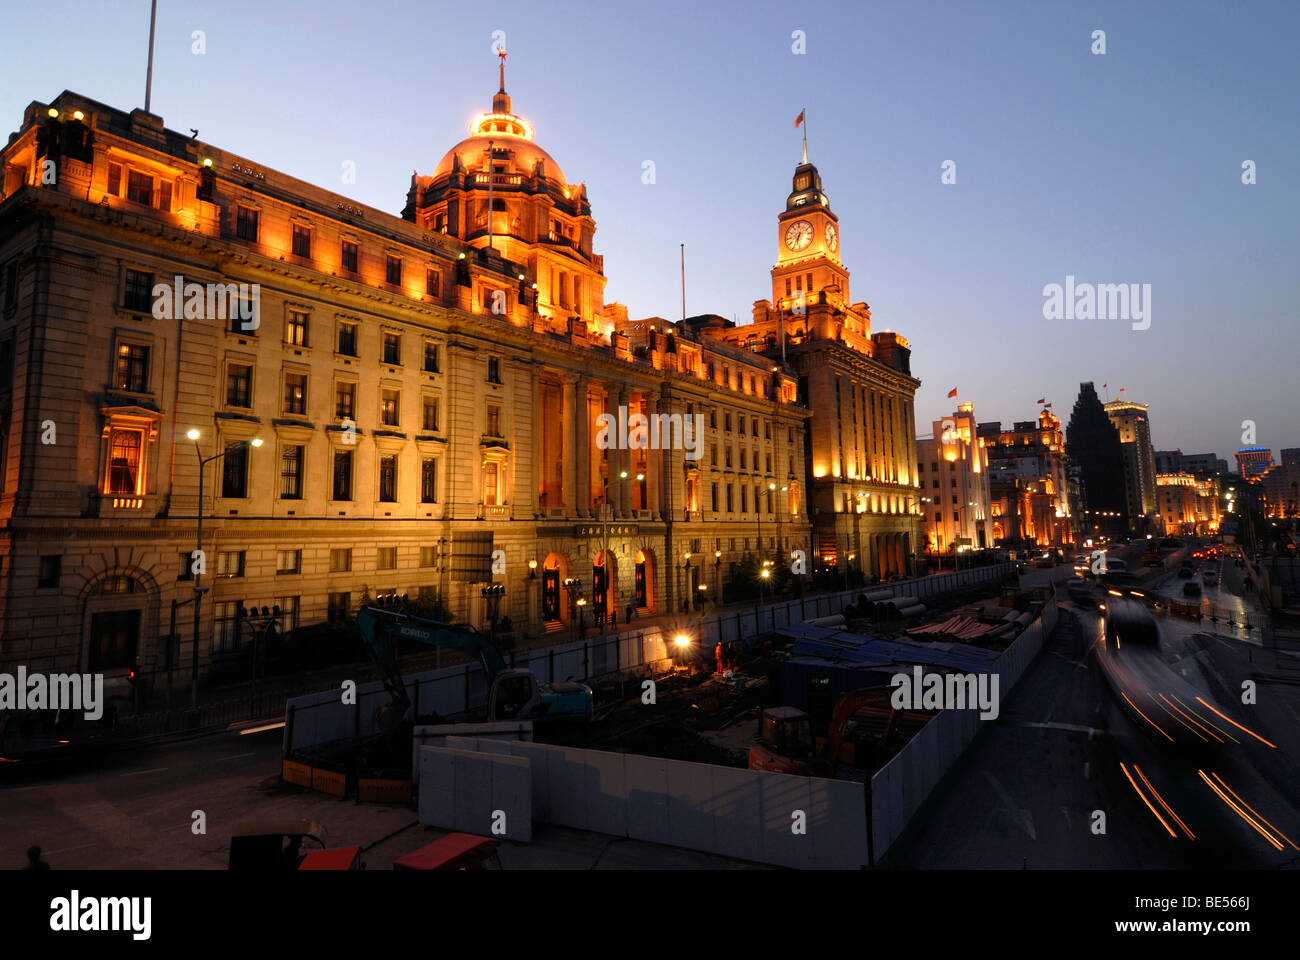 The illuminated Bund promenade at night, avenue in Shanghai, with HSBC Building, and China Merchants Bank Building, - Stock Image